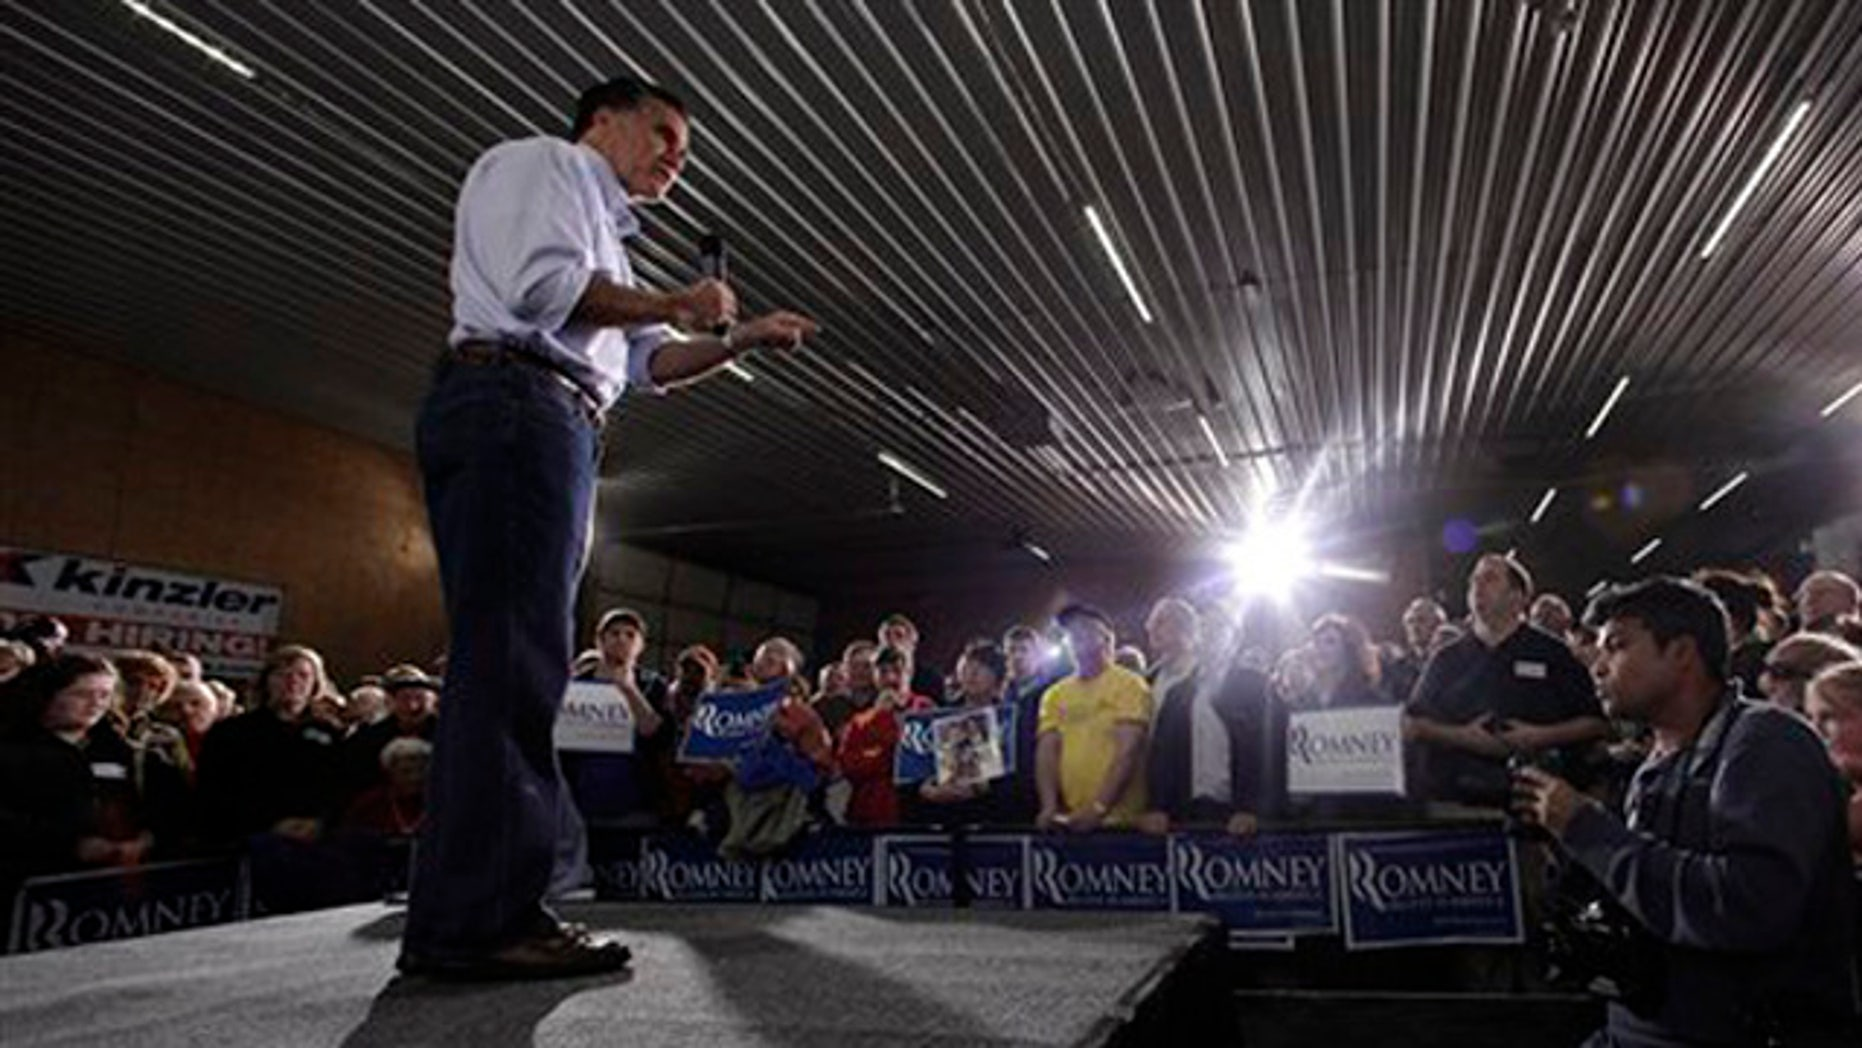 Dec. 29, 2011: Mitt Romney  speaks during a campaign stop at Kinzler Construction in Ames, Iowa.